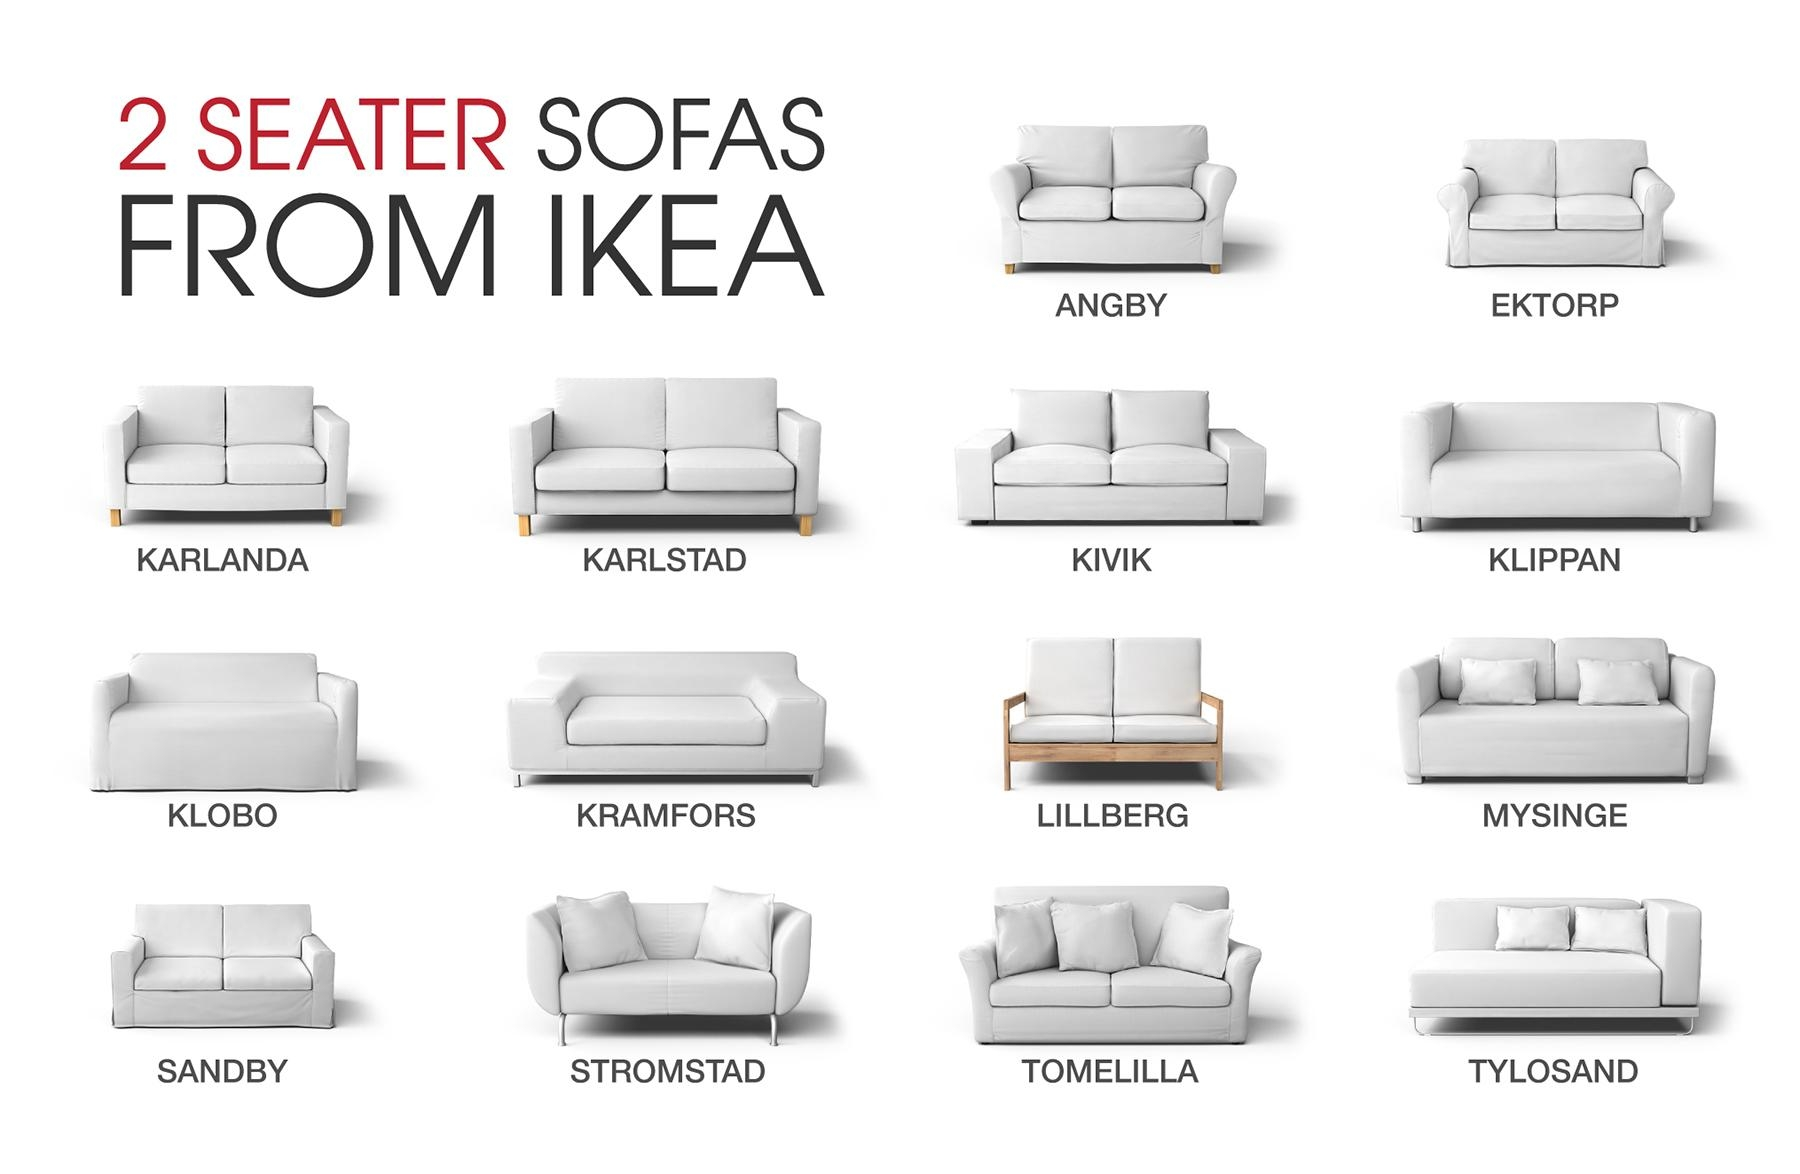 Ikea Sofa Covers For Discontinued Ikea Couch Models with Ikea Two Seater Sofas